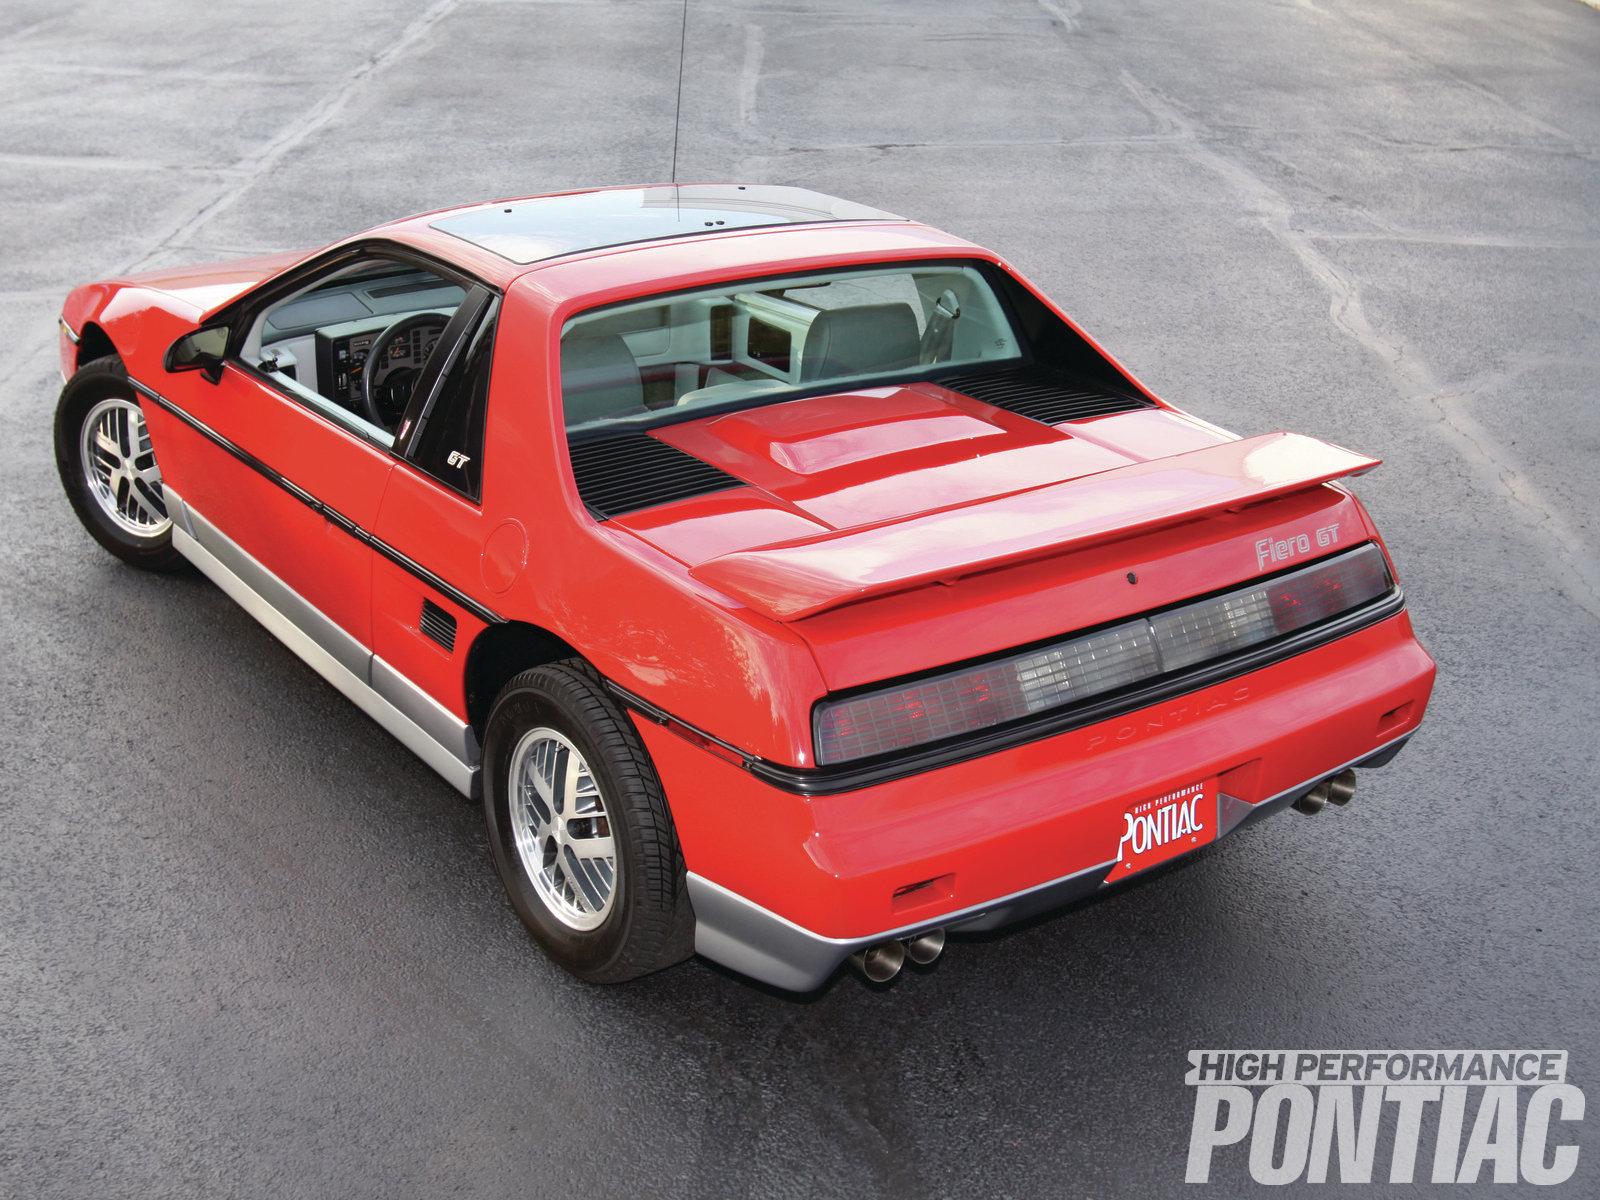 The rear end of the Fiero GT was similar to the standard version, with the exceptions of the rear spoiler, which replaced the luggage rack and the engine cover, which was body-colored and slightly bubbled for engine clearance.